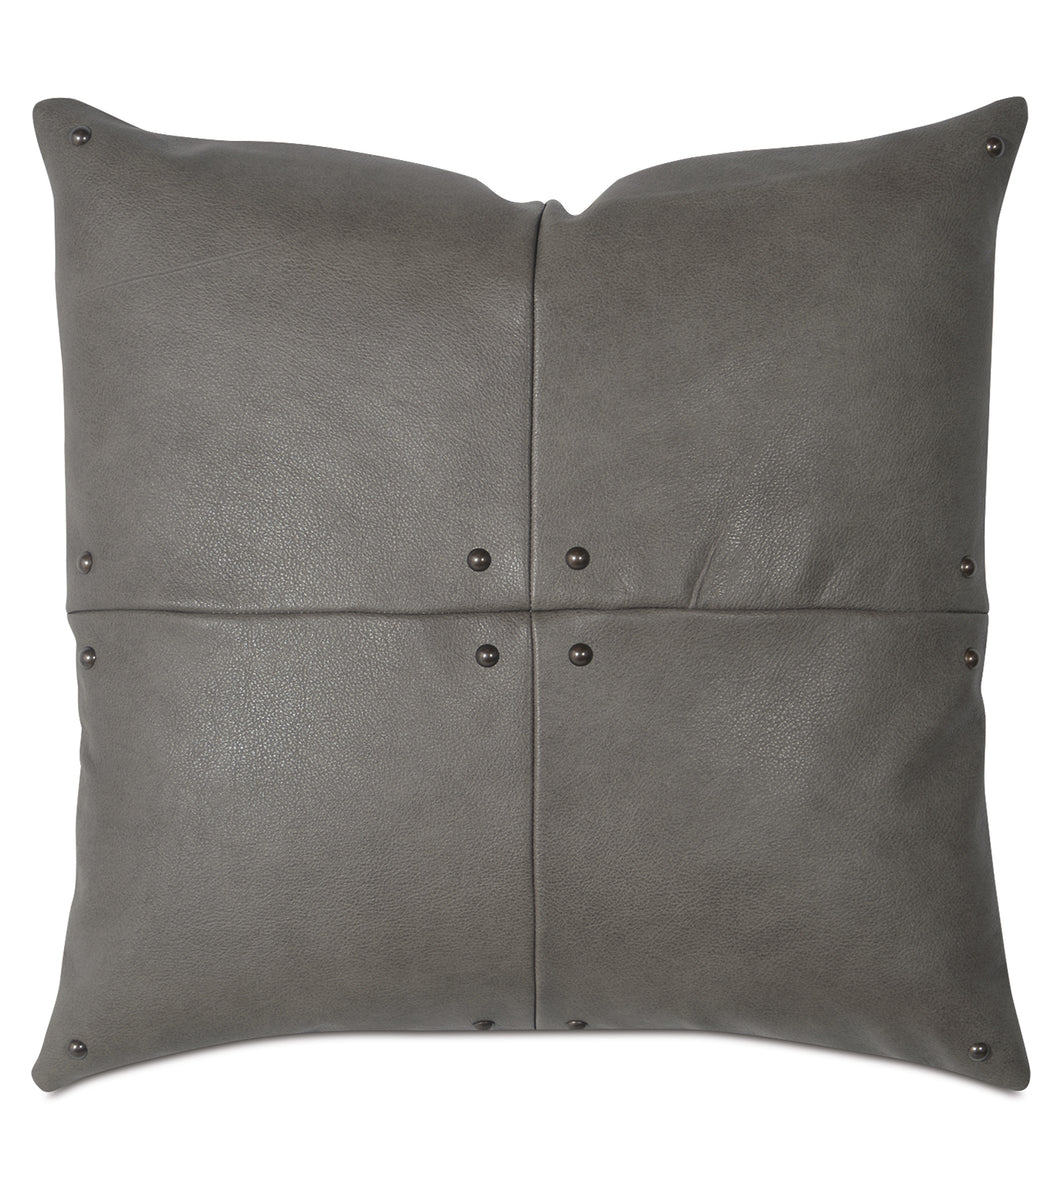 Telluride Nailhead  Decorative pillow in  Cowhide Leather 20